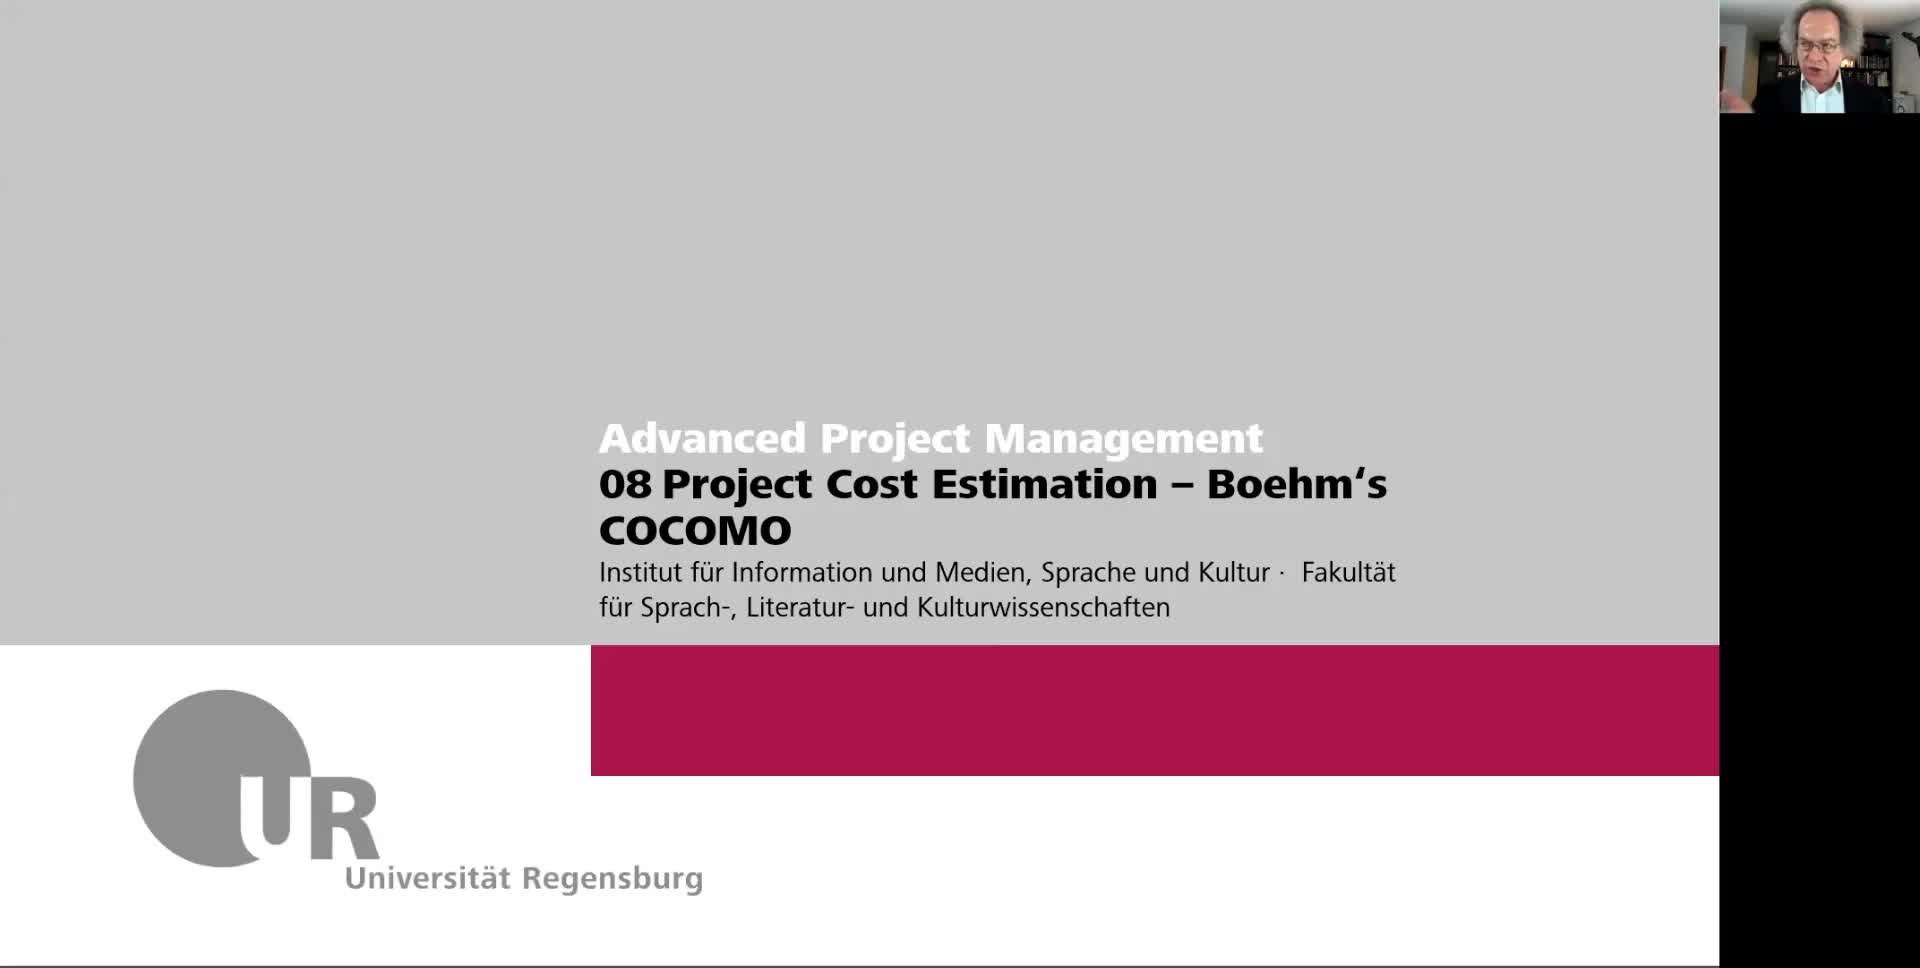 Advanced IT Project Management WS 2021: 08 09 Cost Estimation Bohems COCOMO, Risk Management